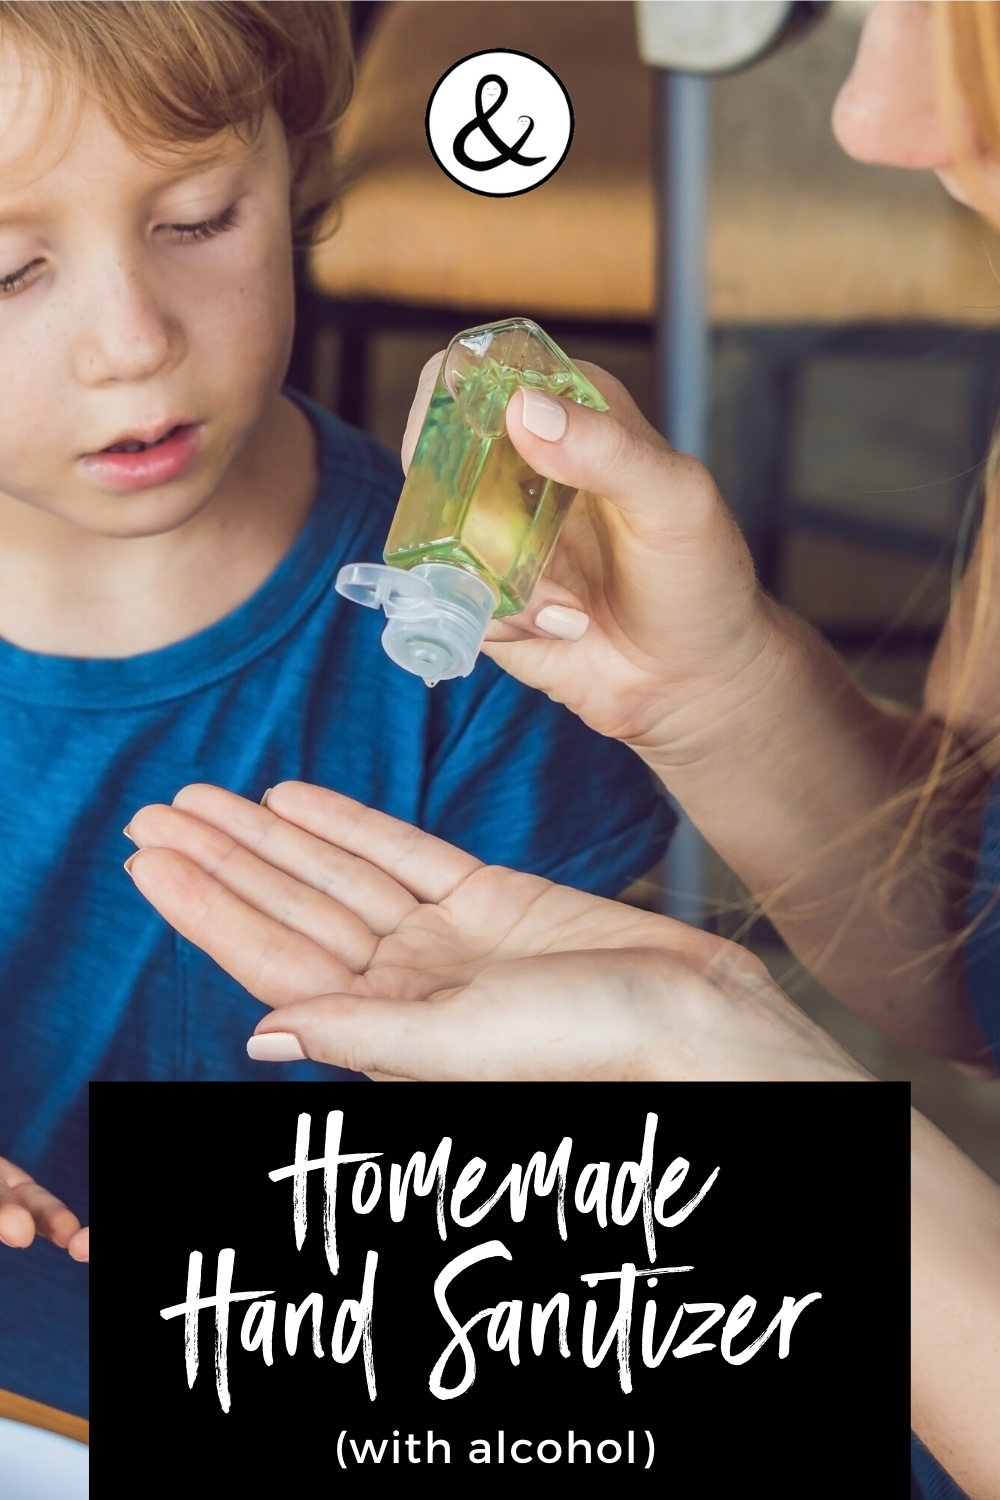 Homemade Hand Sanitizer with Alcohol